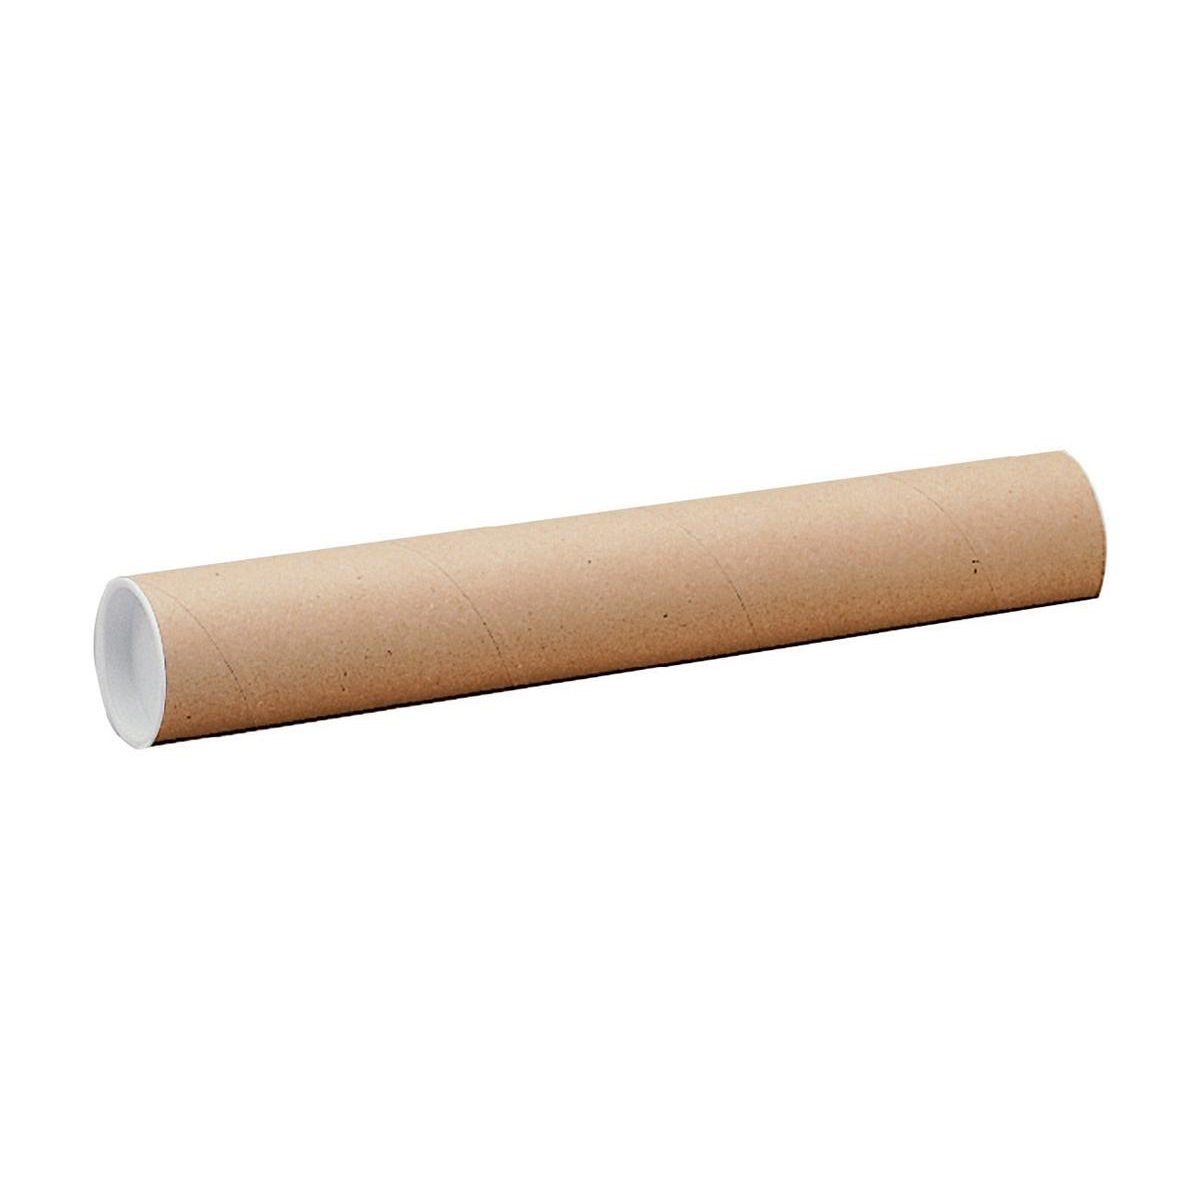 Postal Tube Cardboard with Plastic End Caps L720xDia.102mm Pack 12